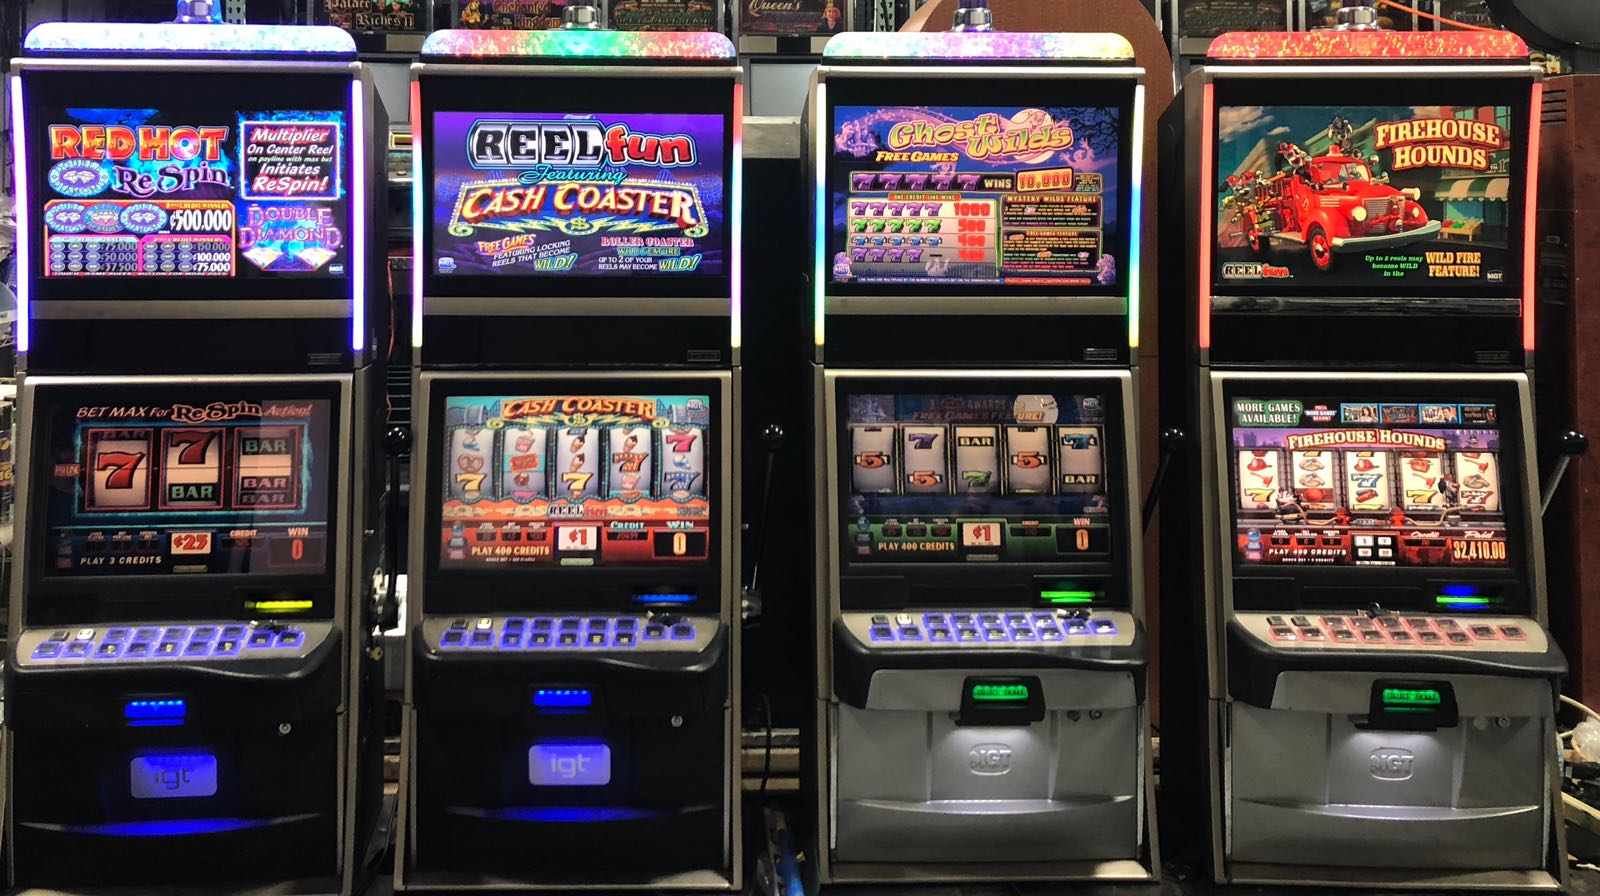 Jumbo slot machine for sale